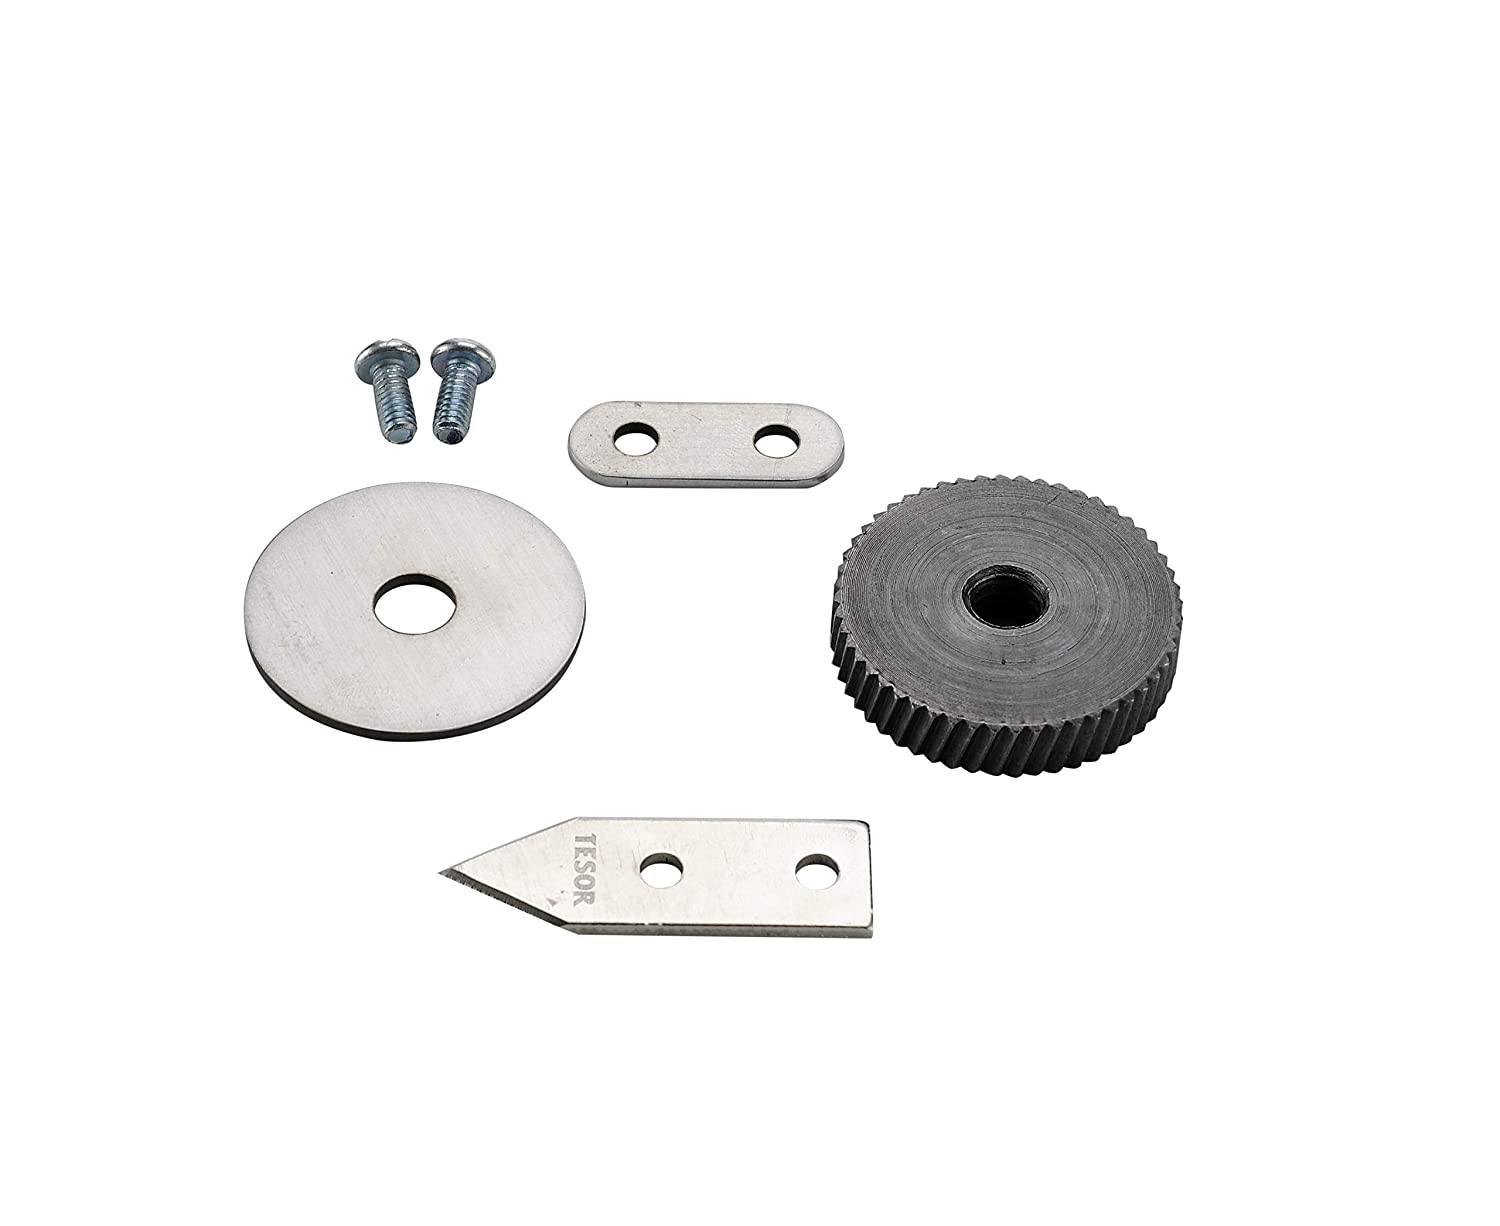 Replacement Parts - Knife/Blade & Gear Compatible with Edlund #1 Commercial Can Openers (#1 Size - 1 Pack)